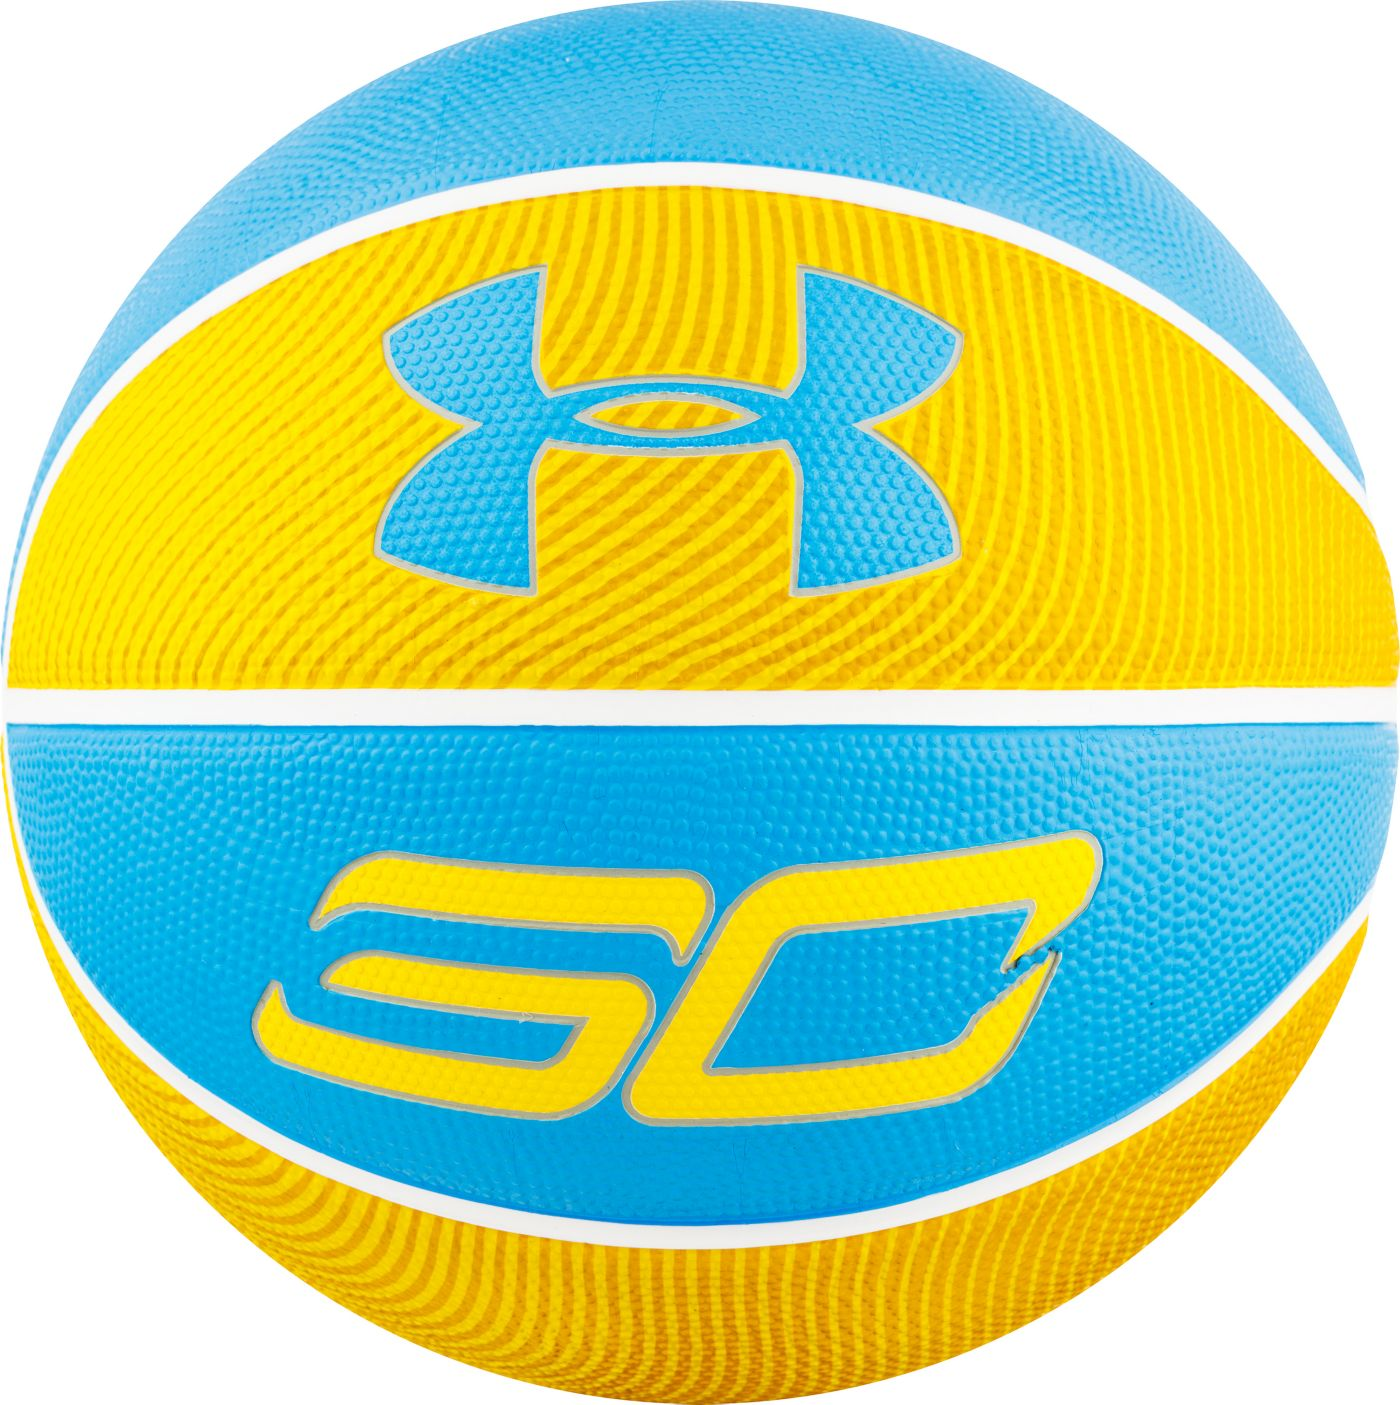 "Under Armour Stephen Curry Youth Basketball (27.5"")"